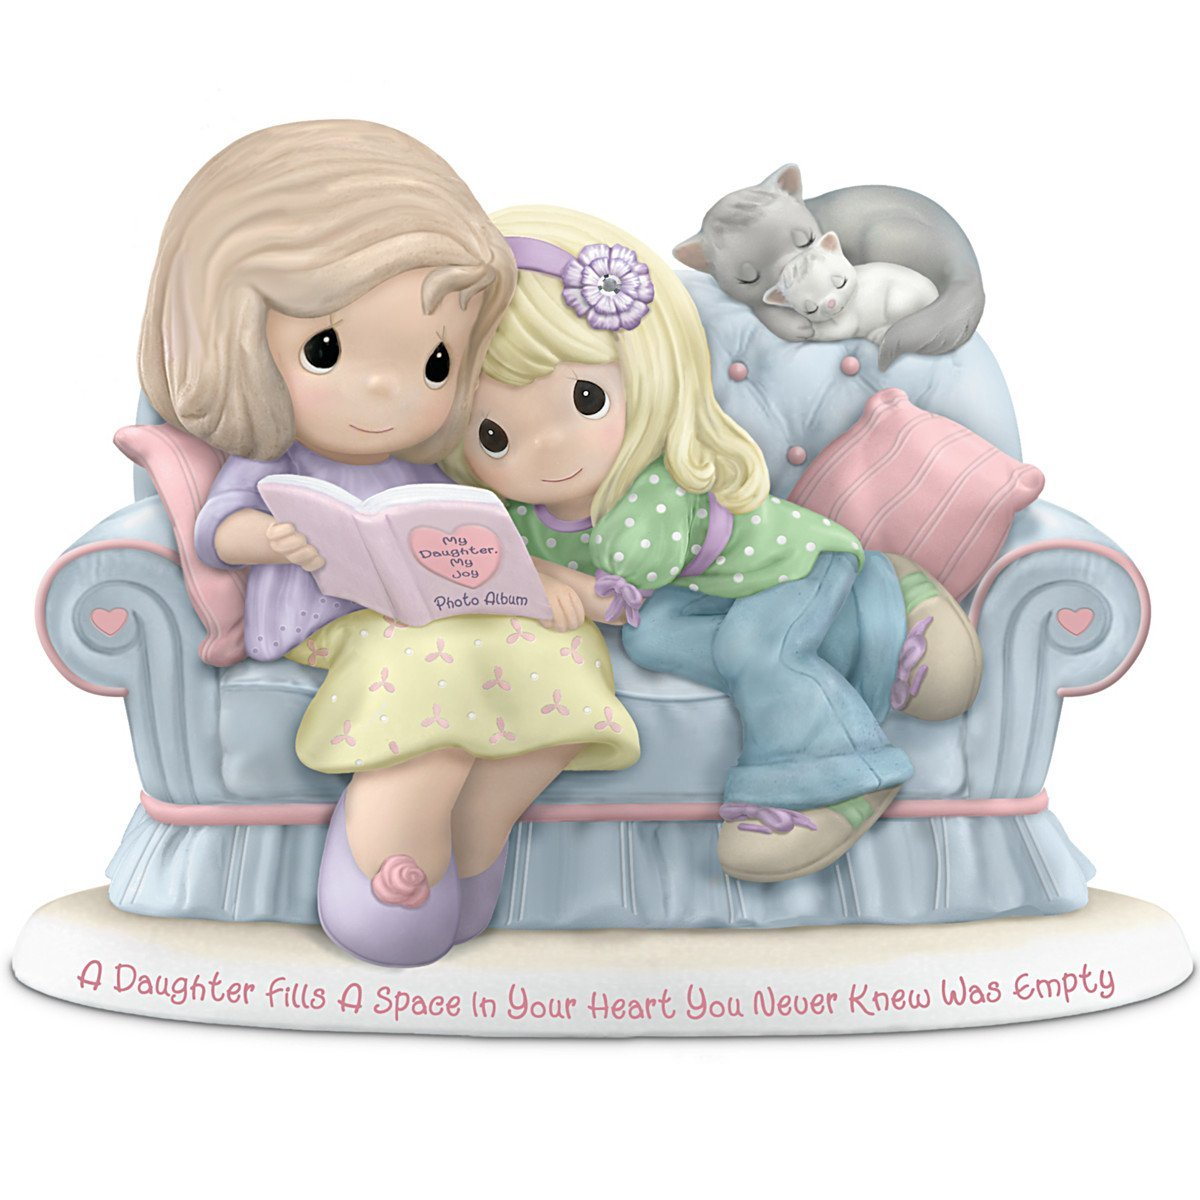 Precious Moments Figurine: A Daughter Fills A Space In Your Heart You Never Knew Was Empty by The Hamilton Collection